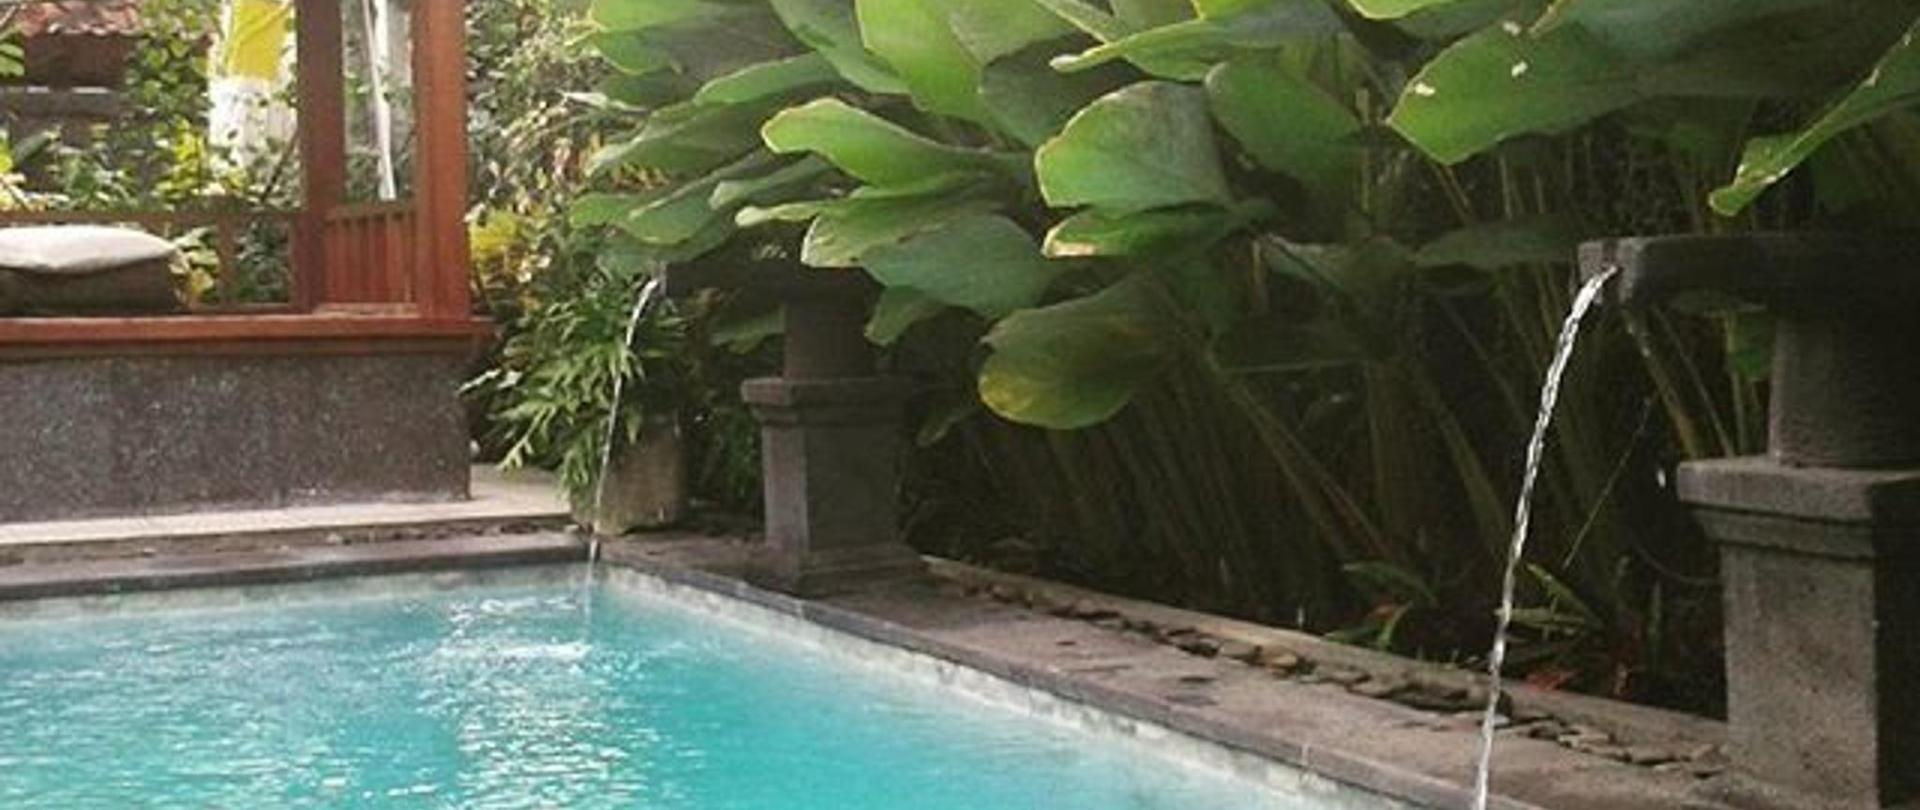 outdoor_pool_in_chez_ida-_dont_miss_it_cheaphotel_chezida_trip_bali_backpaker_pool_villa_ubud_sukawati.jpg